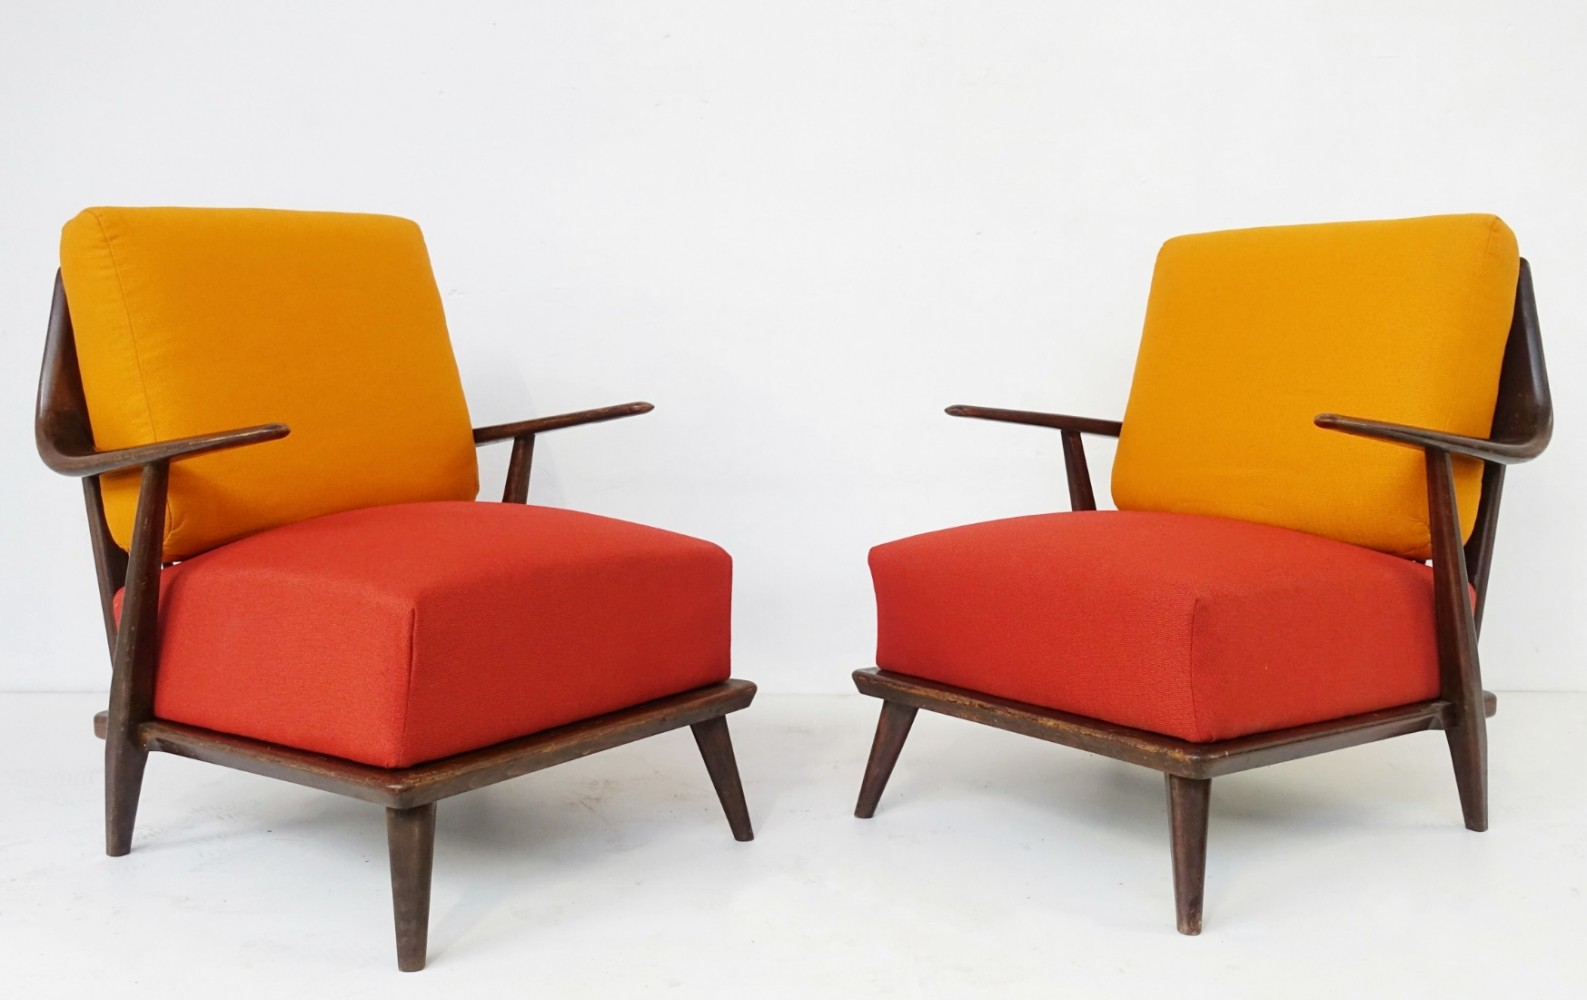 Pair Of Wooden Frame Chairs, 1960s